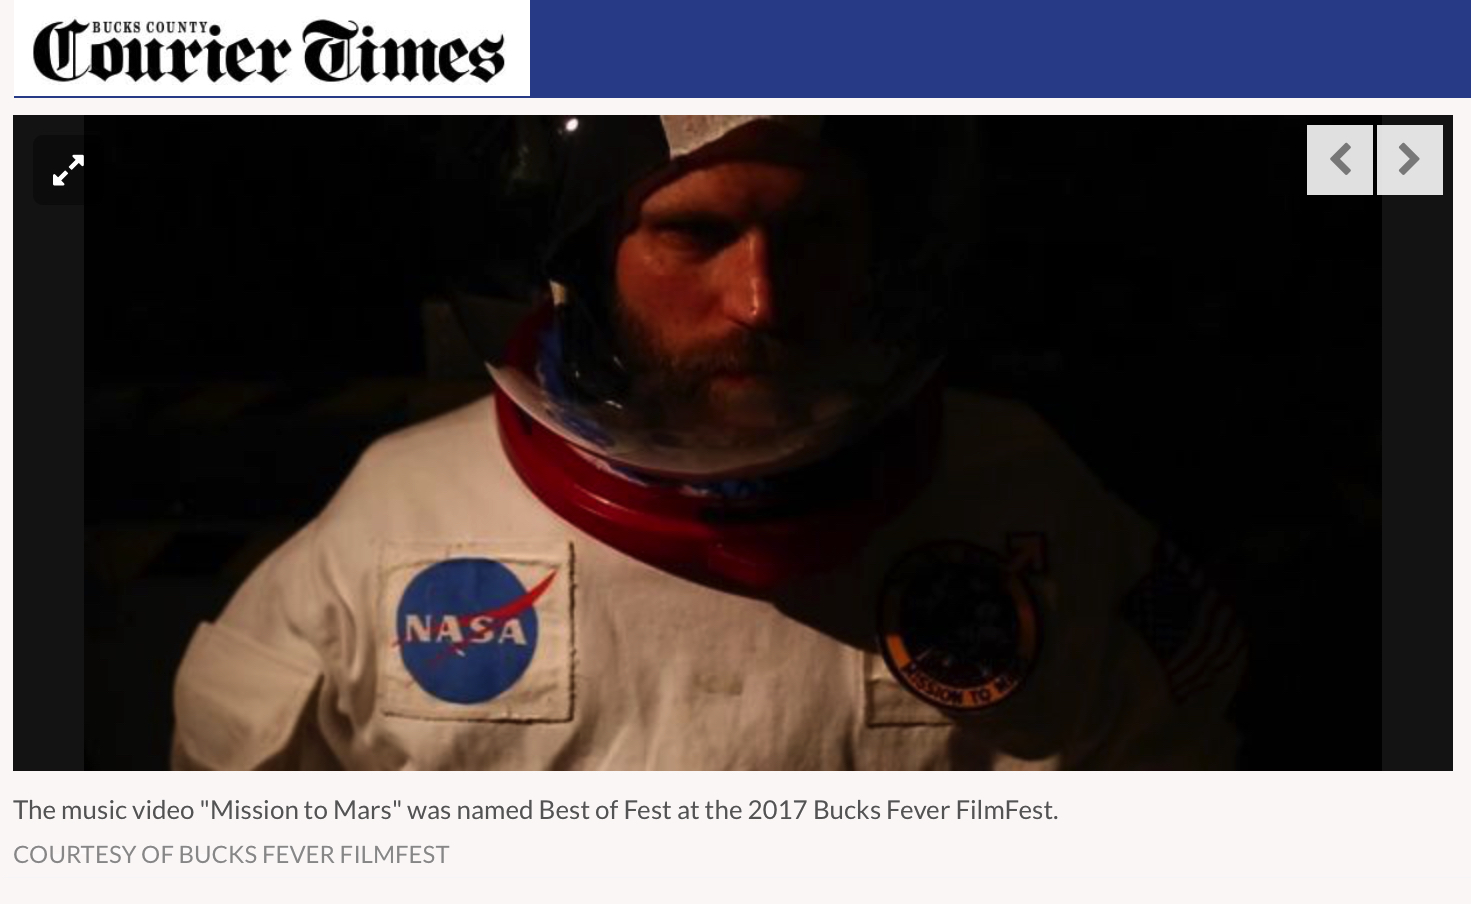 Coverage of 'Mission to Mars' in the Bucks County Courier Times.